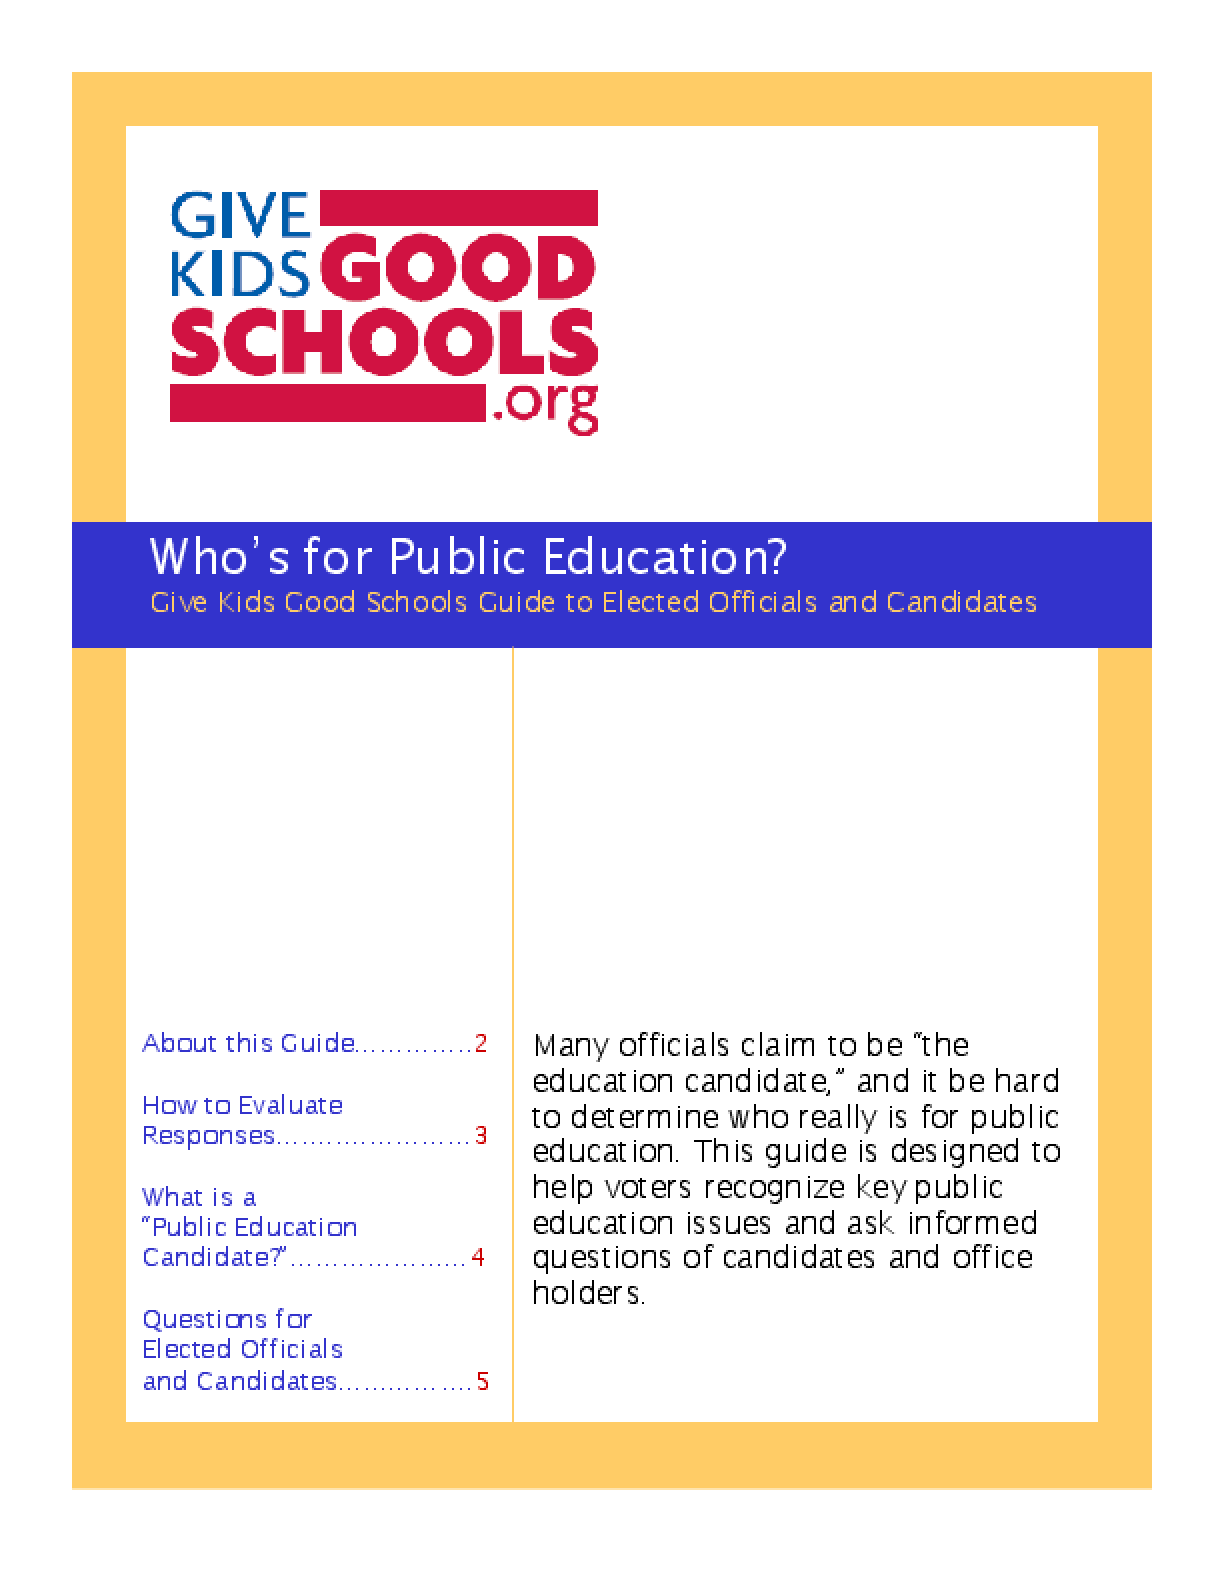 Who's for Public Education? Give Kids Good Schools Guide to Elected Officials and Candidates